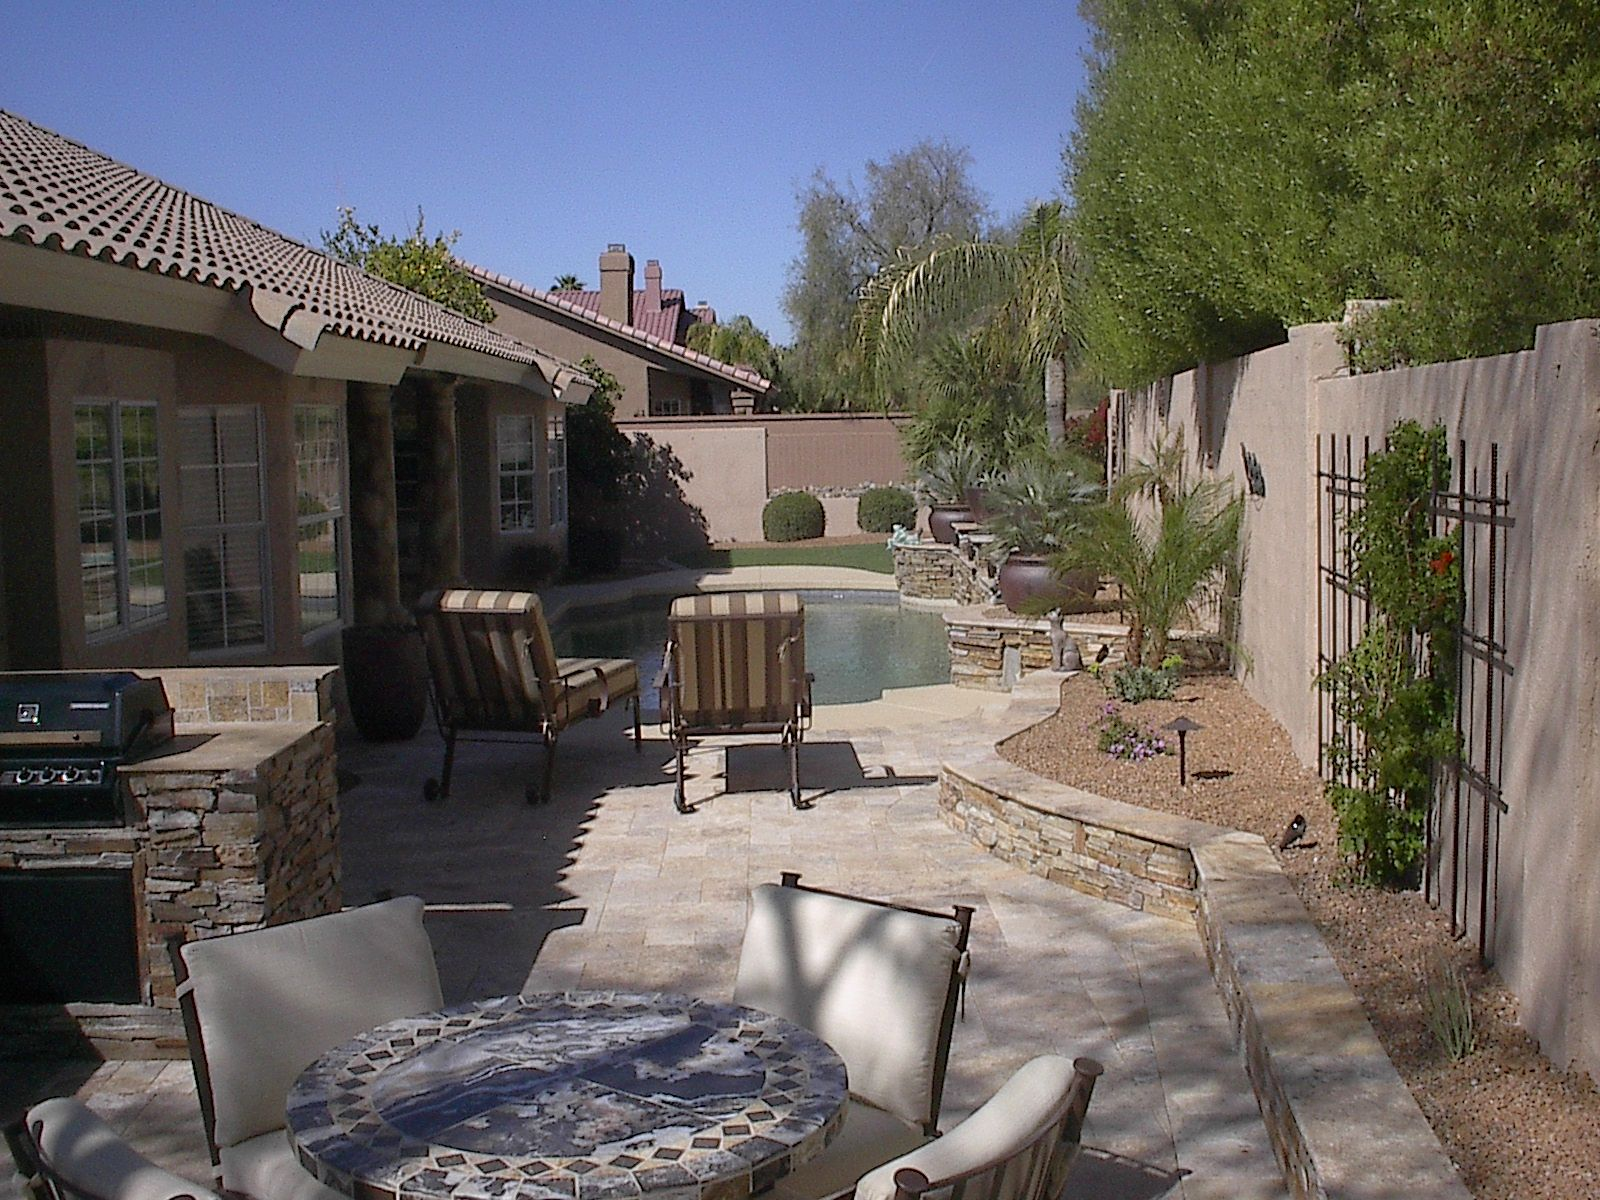 Garden Ideas Arizona christina, author at scenic view landscape | garden design